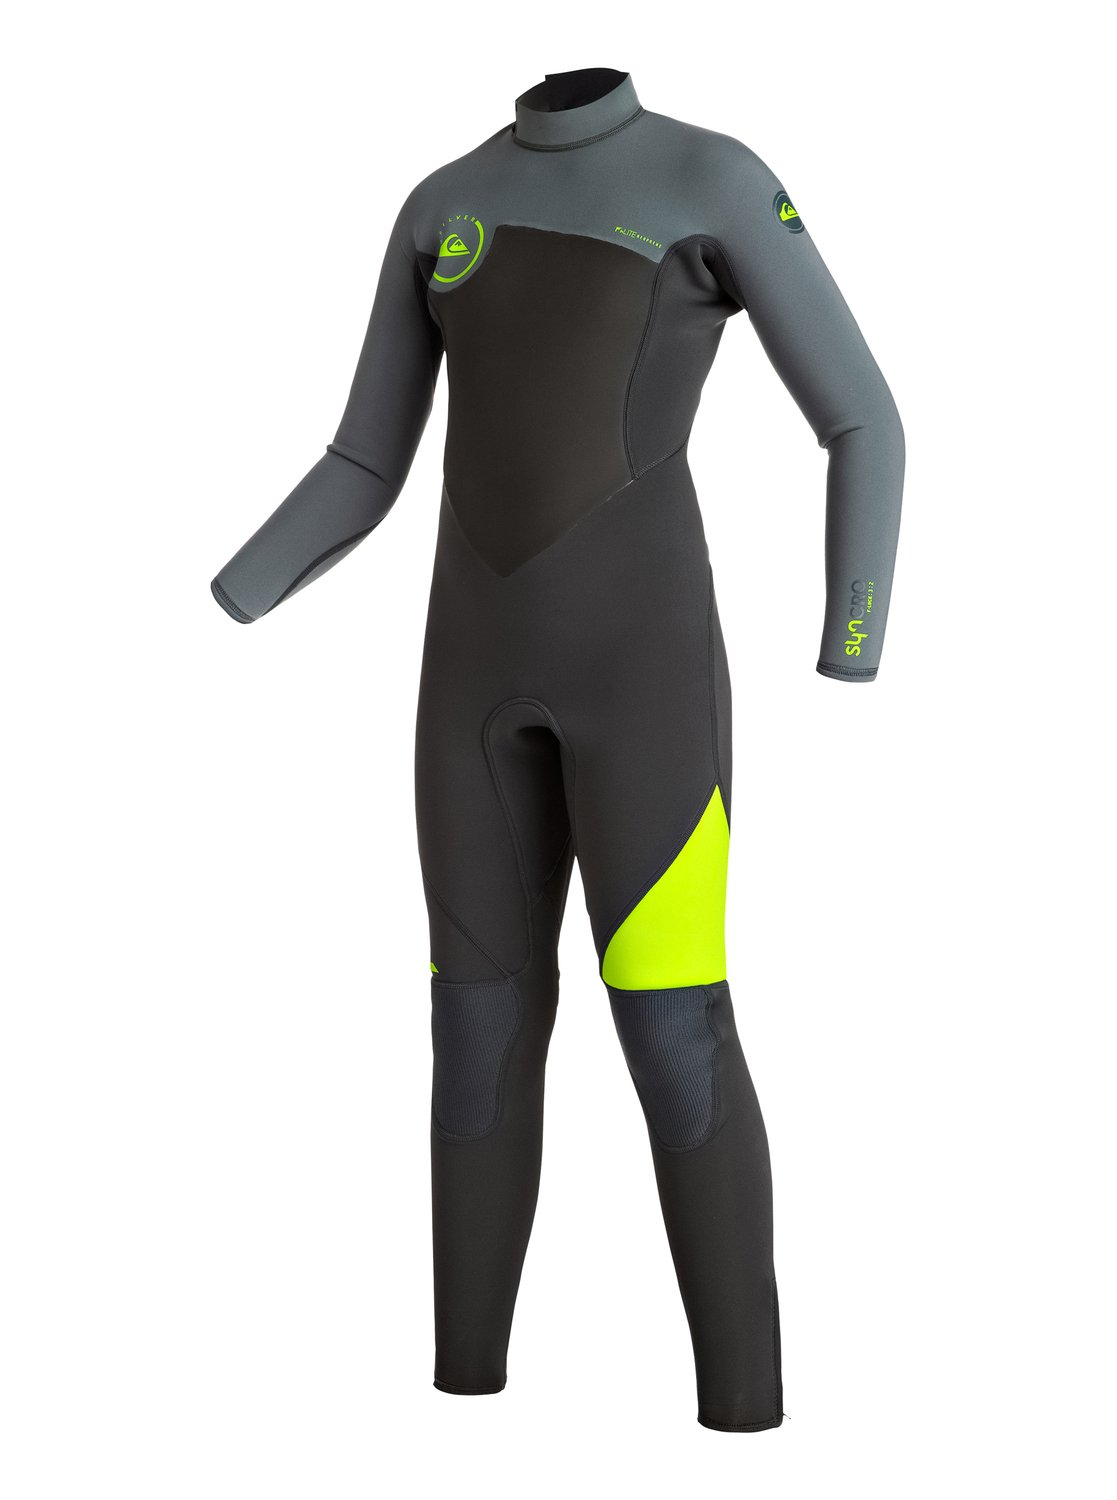 Syncro 3/2mm - Back Zip Full WetsuitF'N lite neoprene technology makes the Syncro 3/2mm wetsuit a lightweight winner in the warmth stakes. Added protection against wind and water comes from Thermal Smoothie panels on the chest and back. Flatlock seams that are flexible and soft make even the longest surf session a comfortable one. Hydrowrap adjustable neck closure seals in heat and keeps water out.<br>